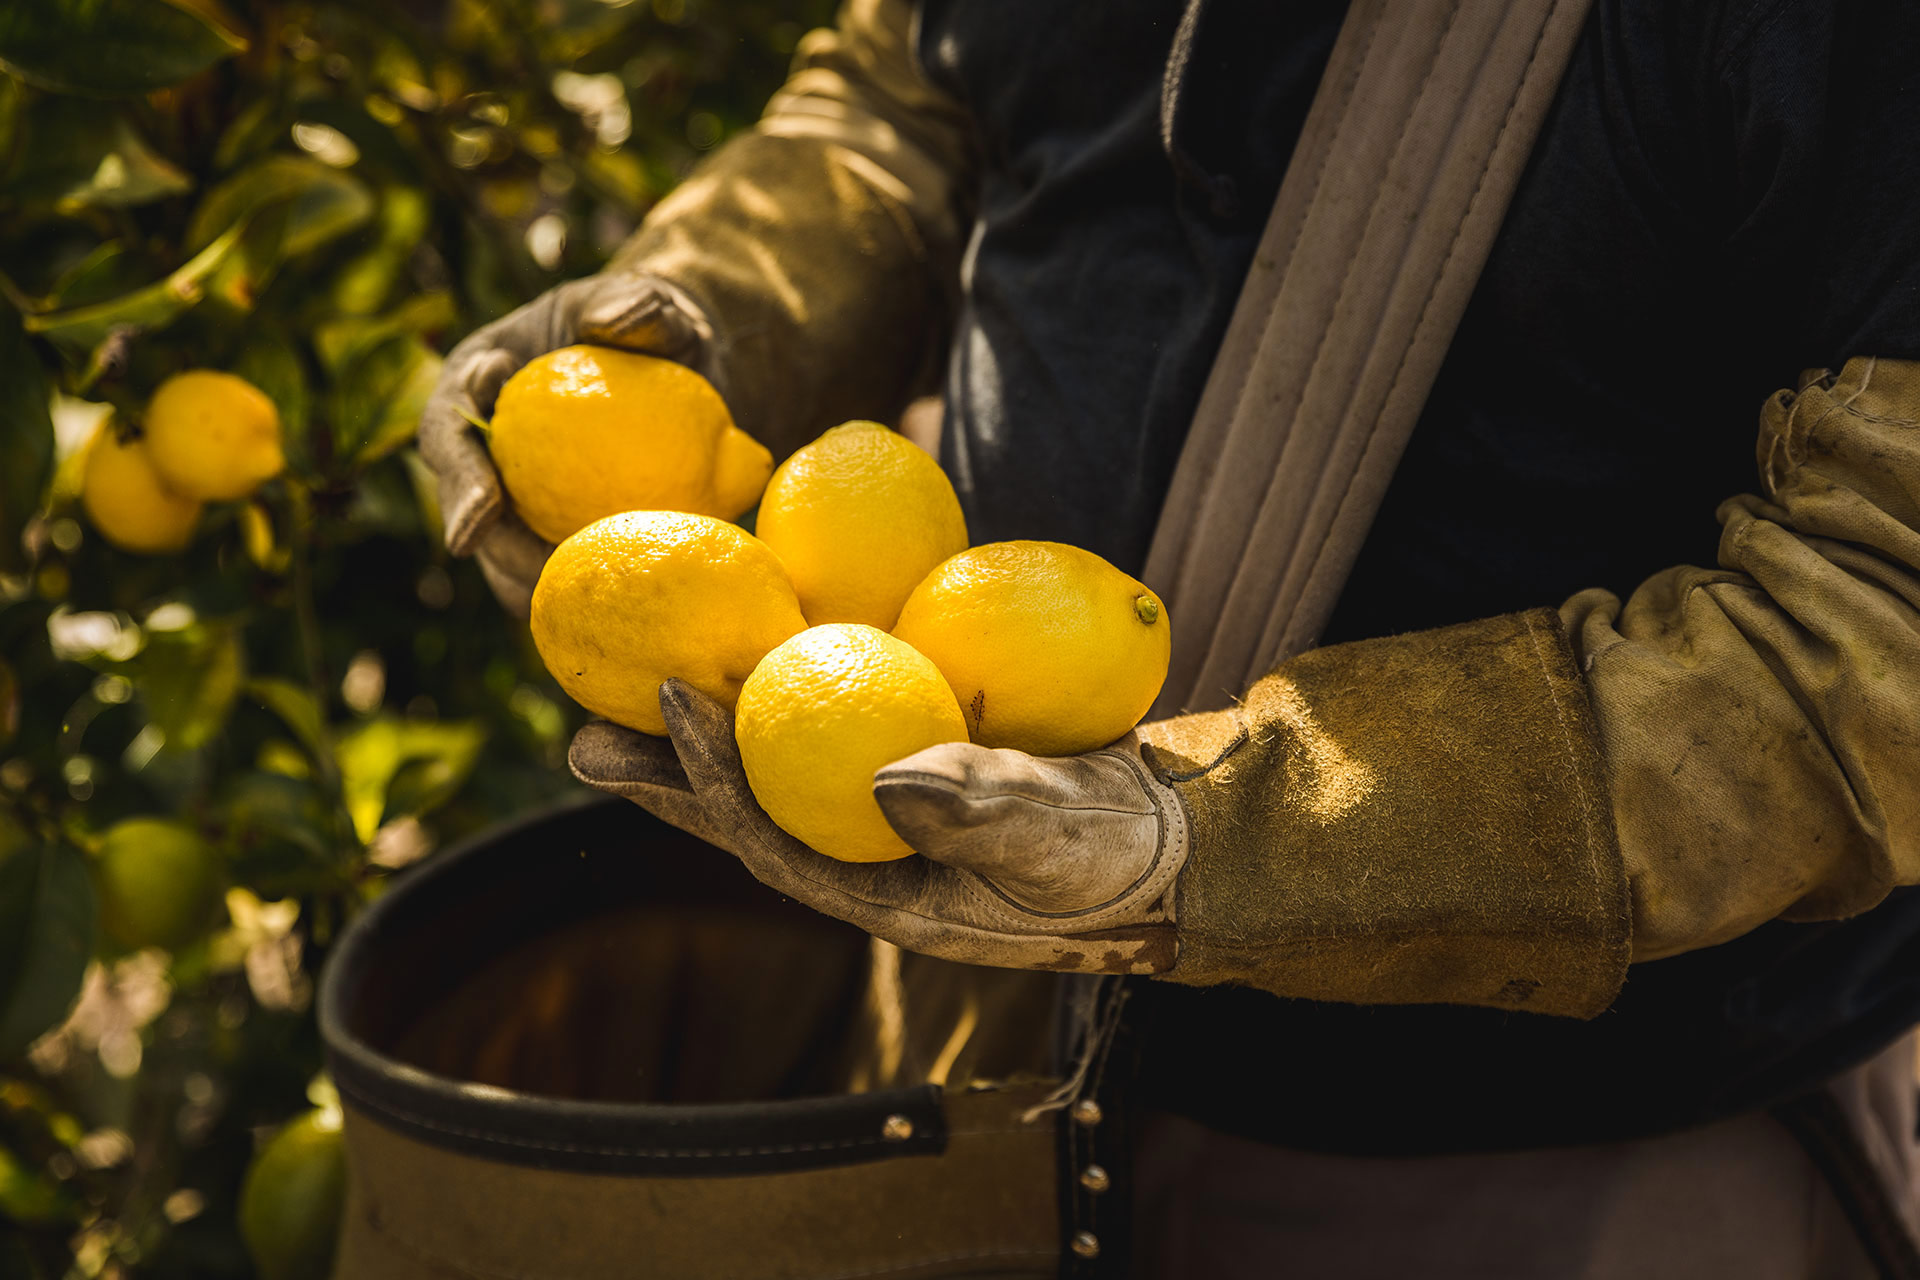 Lemon Harvest in California, El Rifugio Farm